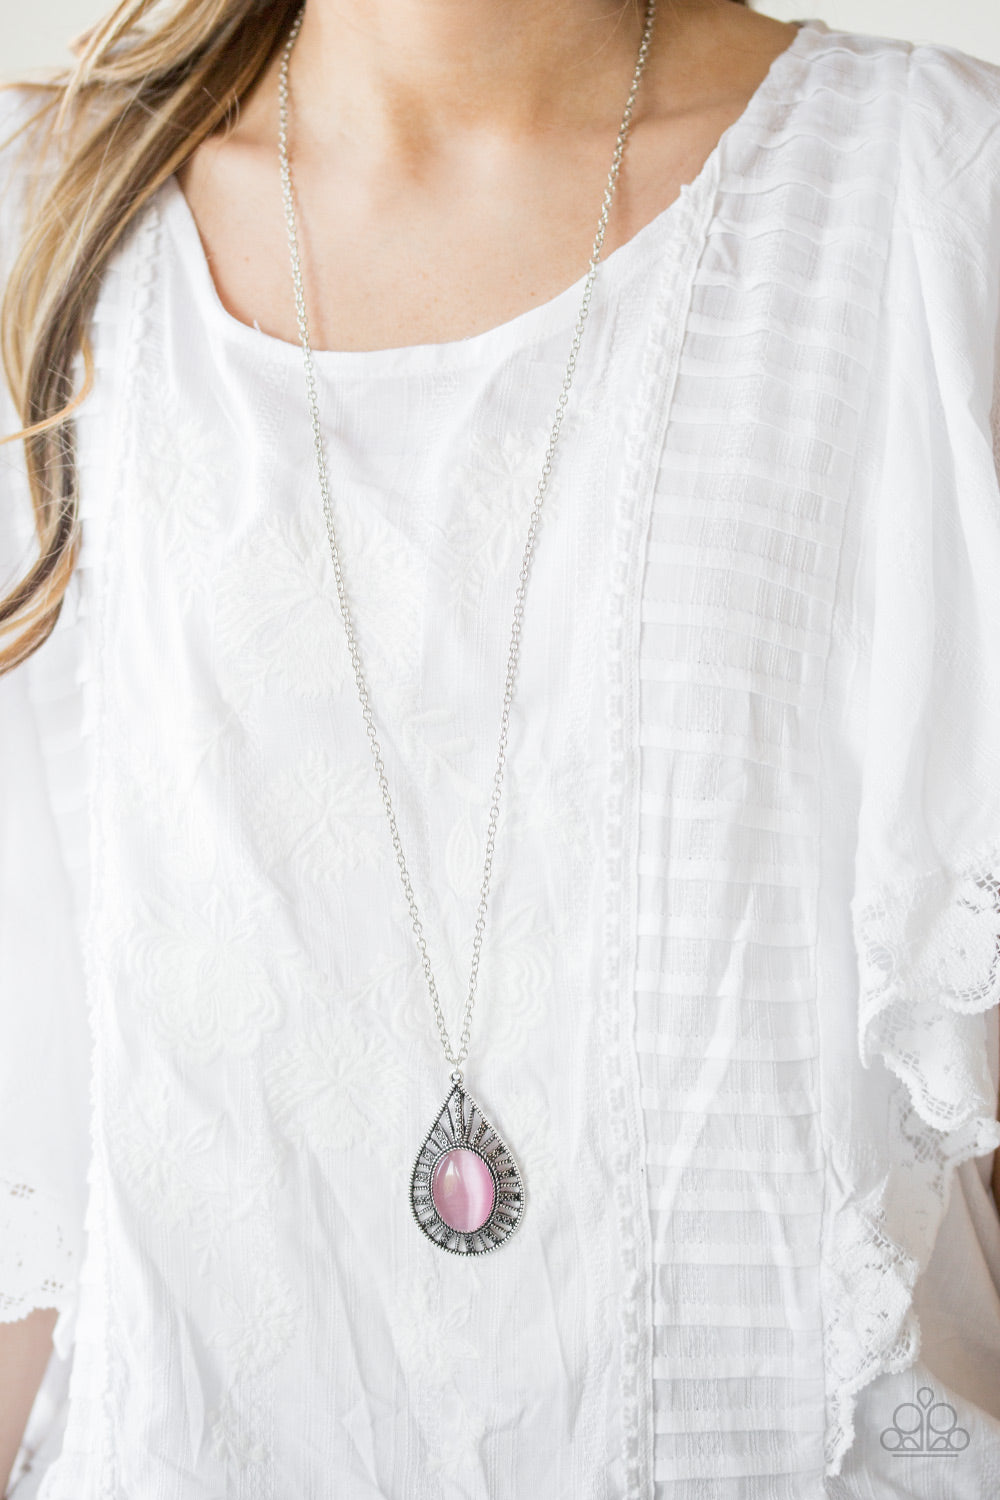 Total Tranquility – Paparazzi – Pink Moonstone Silver Teardrop Pendant Necklace